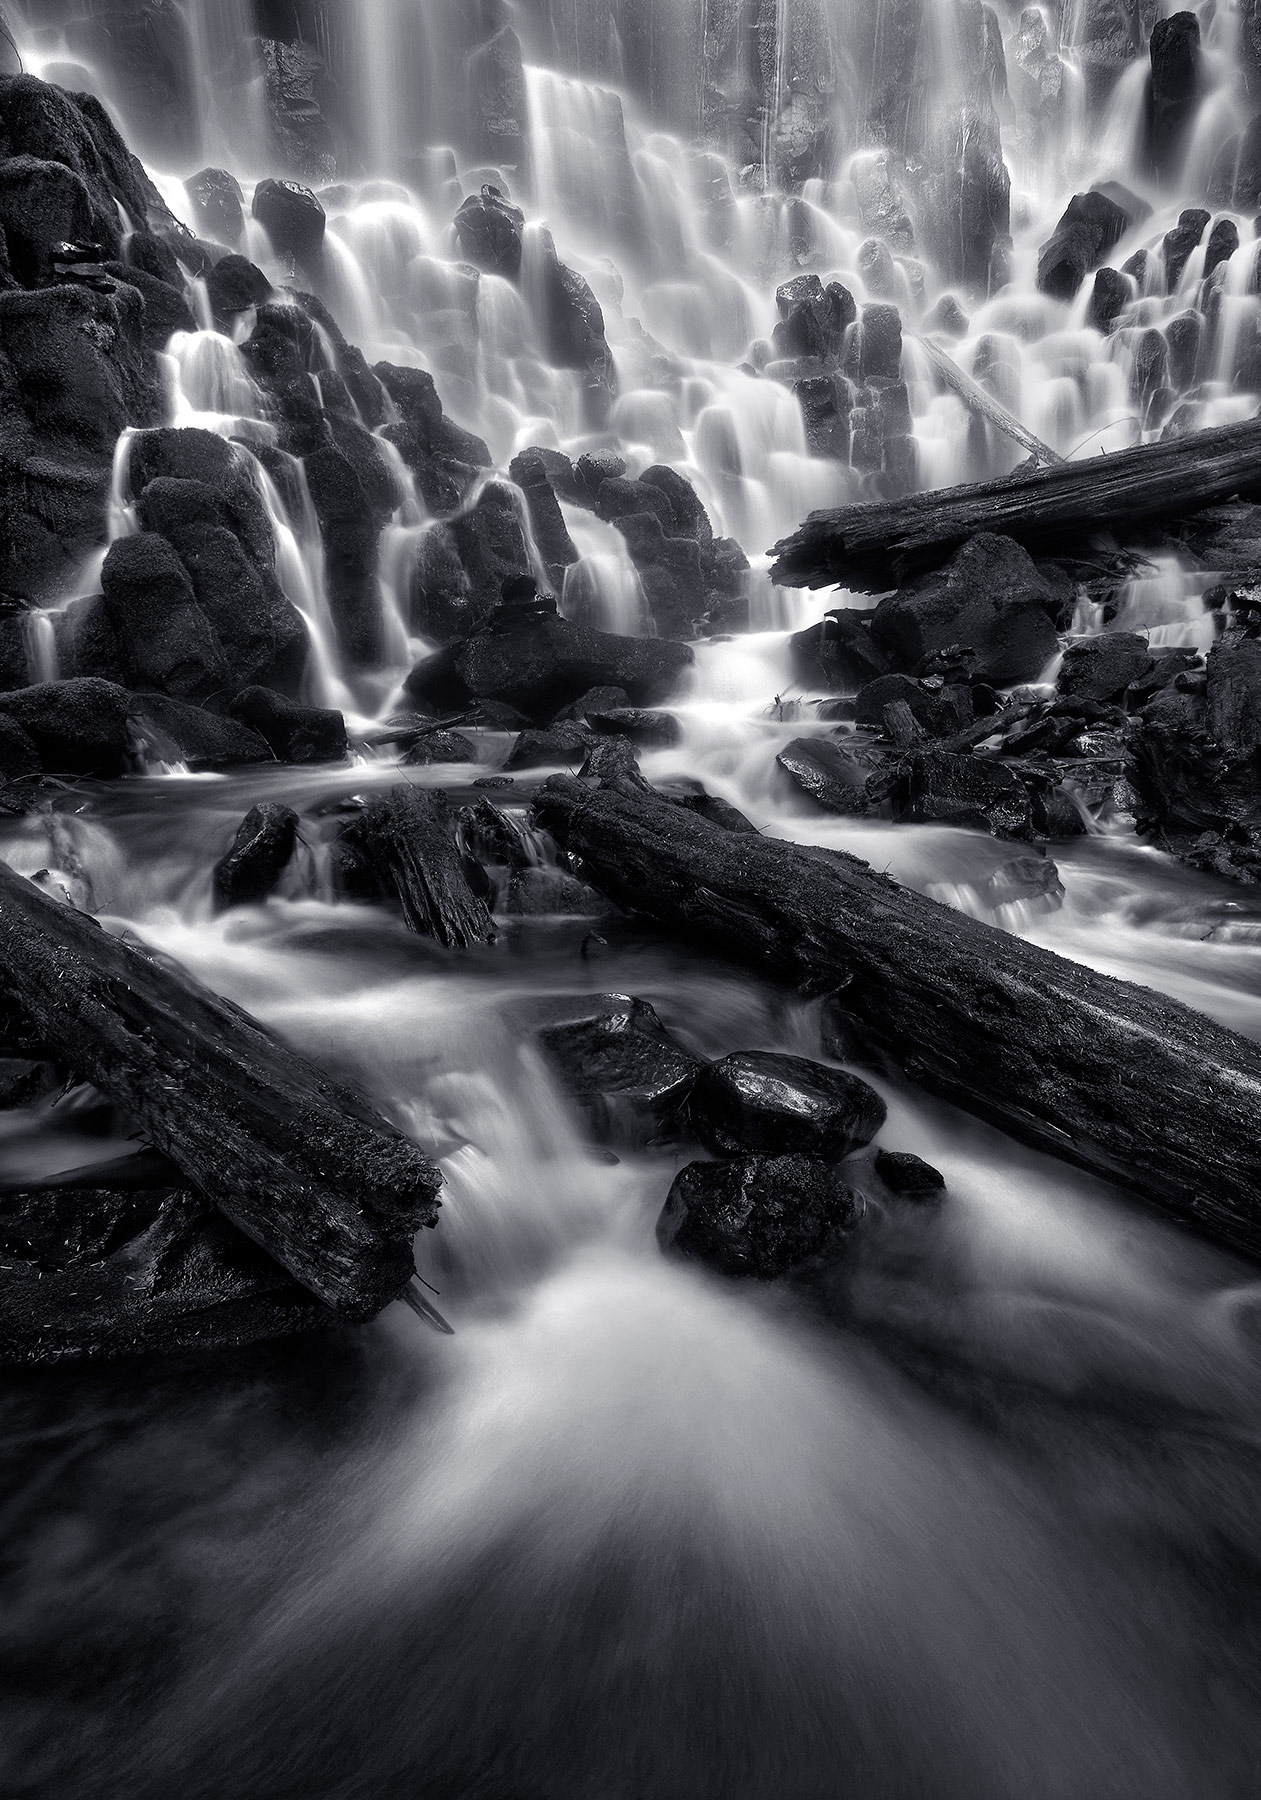 I'm always amazed at the varied tiers and textures of the massive Ramona Falls, in Oregon's Mount Hood Wilderness.